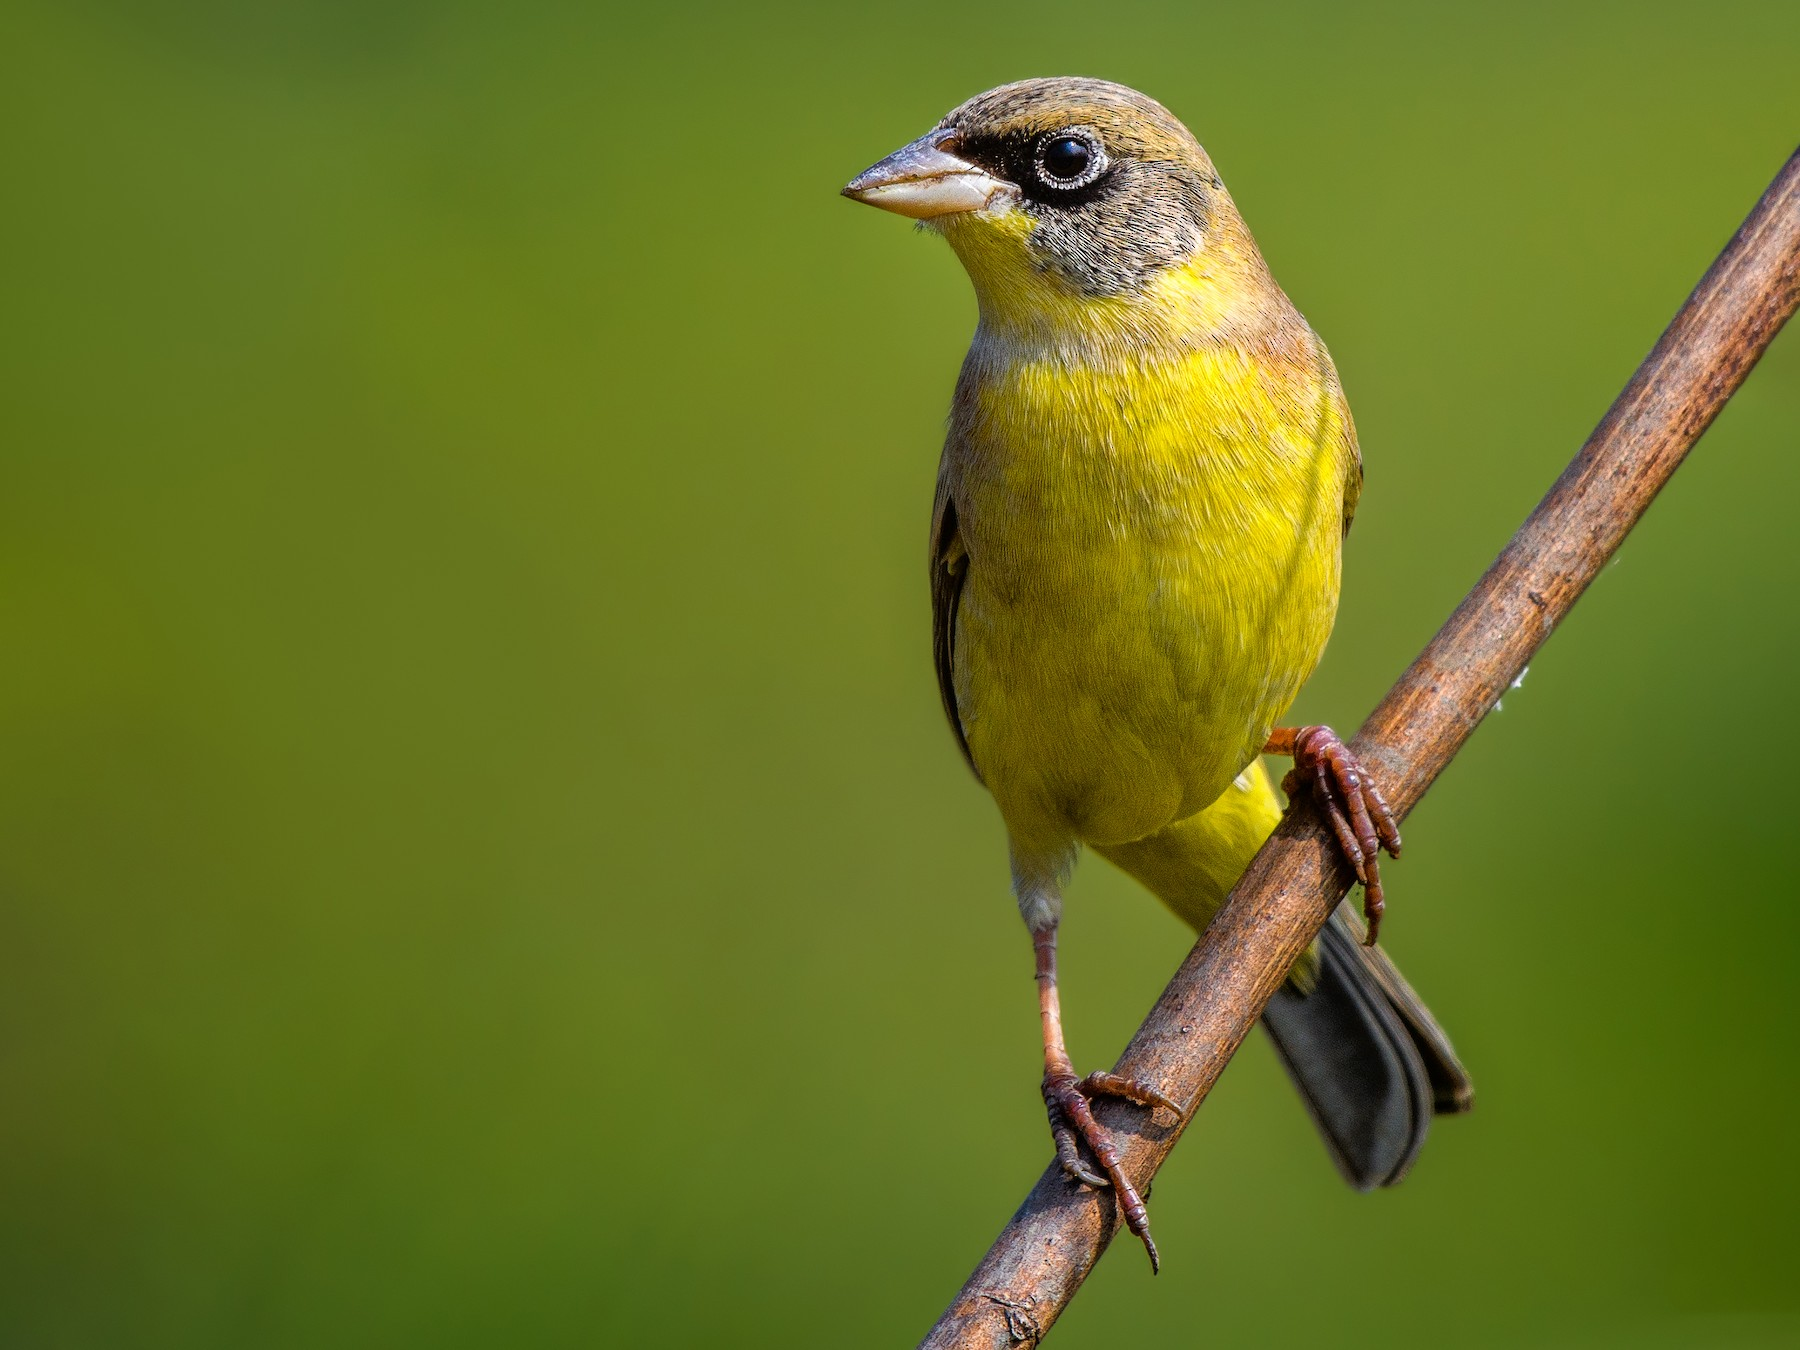 Black-headed Bunting - Abhishek Das